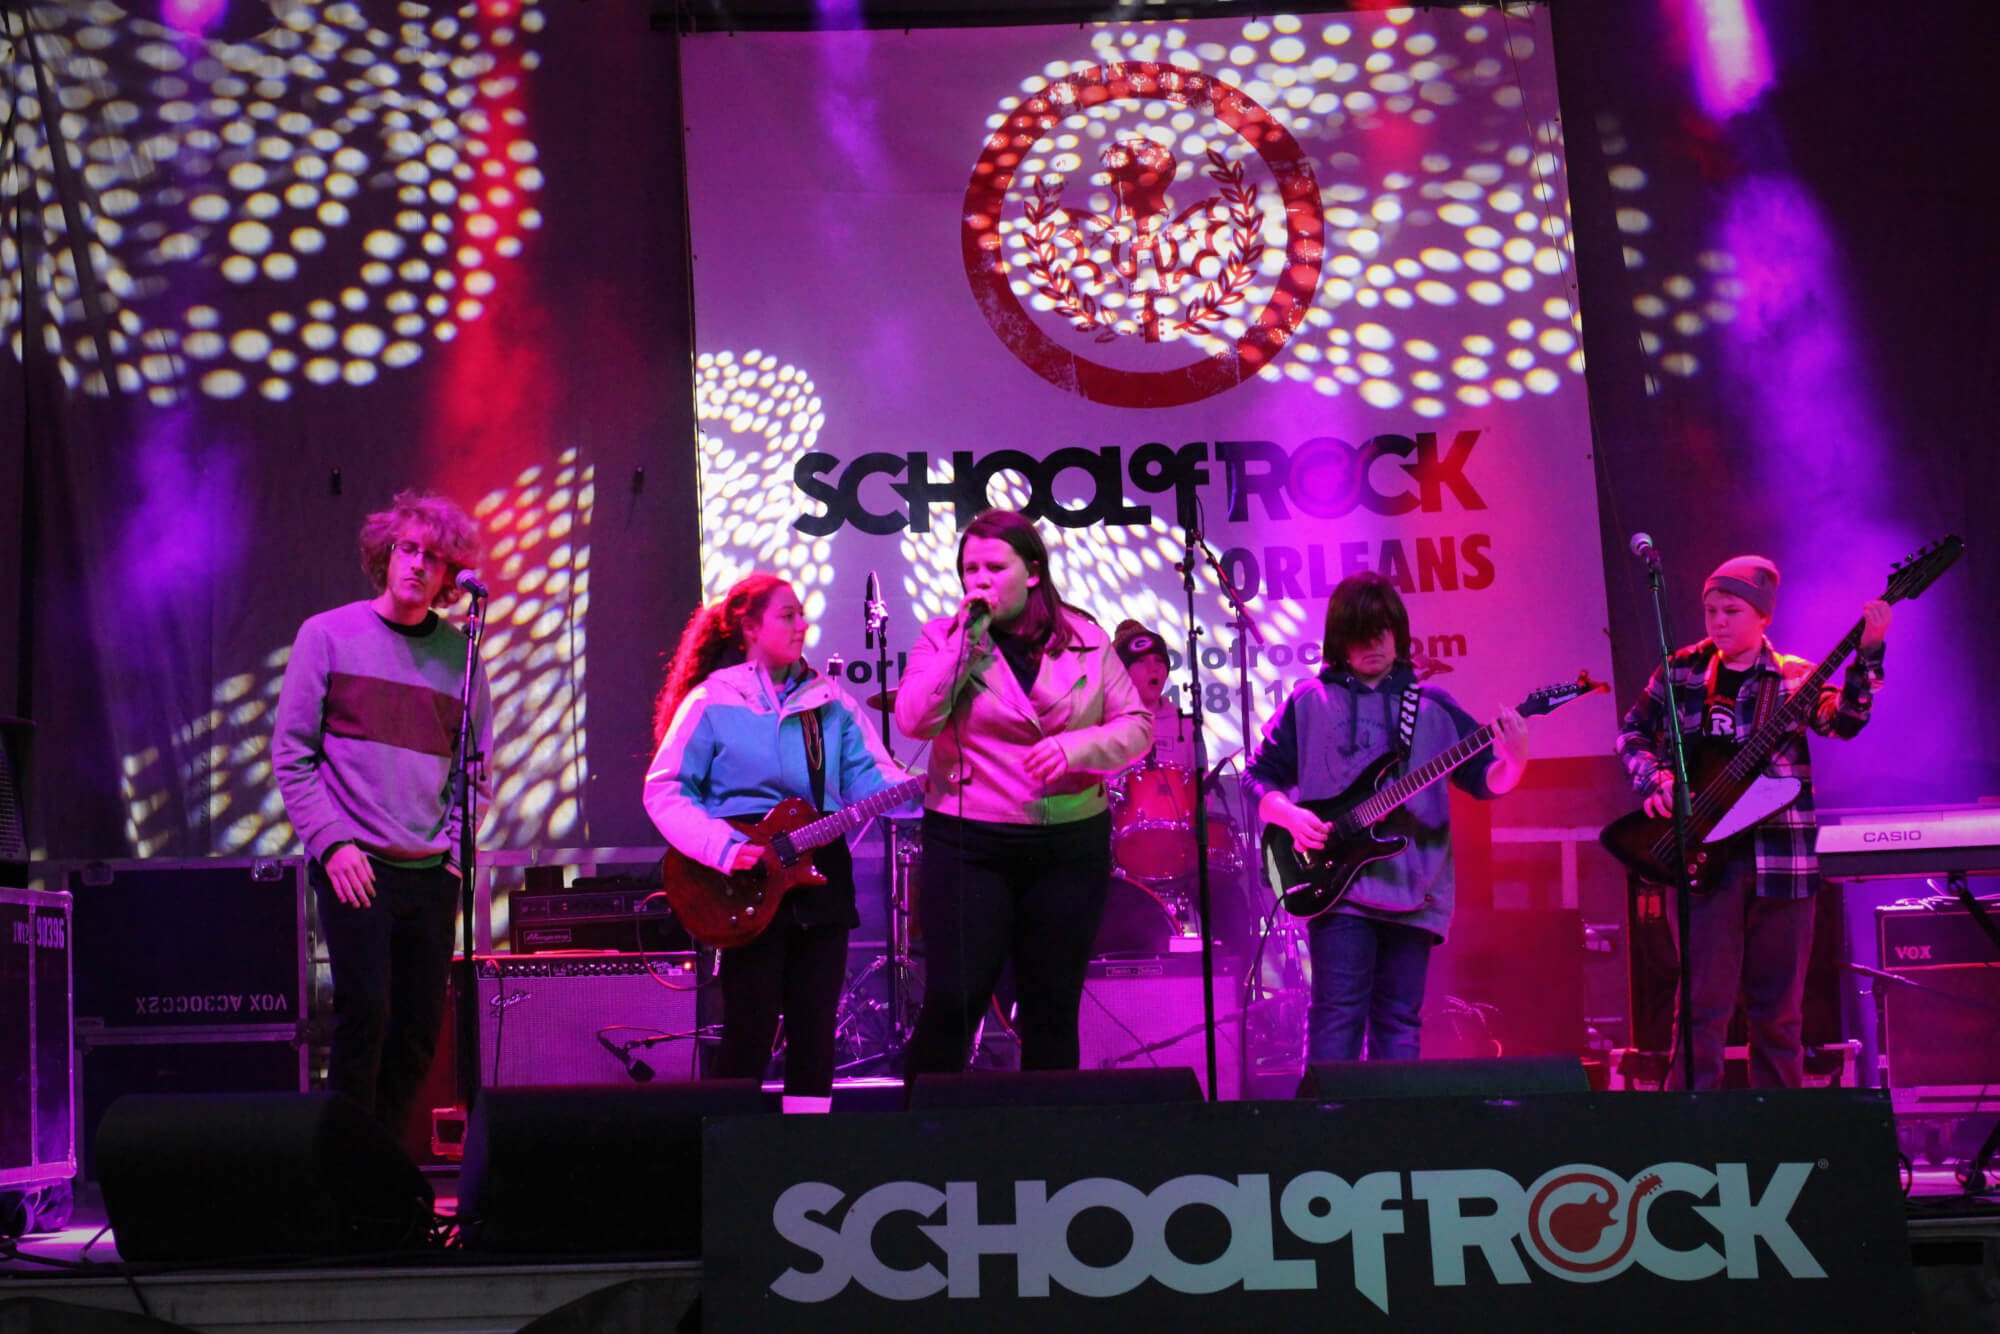 School of Rock Orleans plays the Grey Cup.